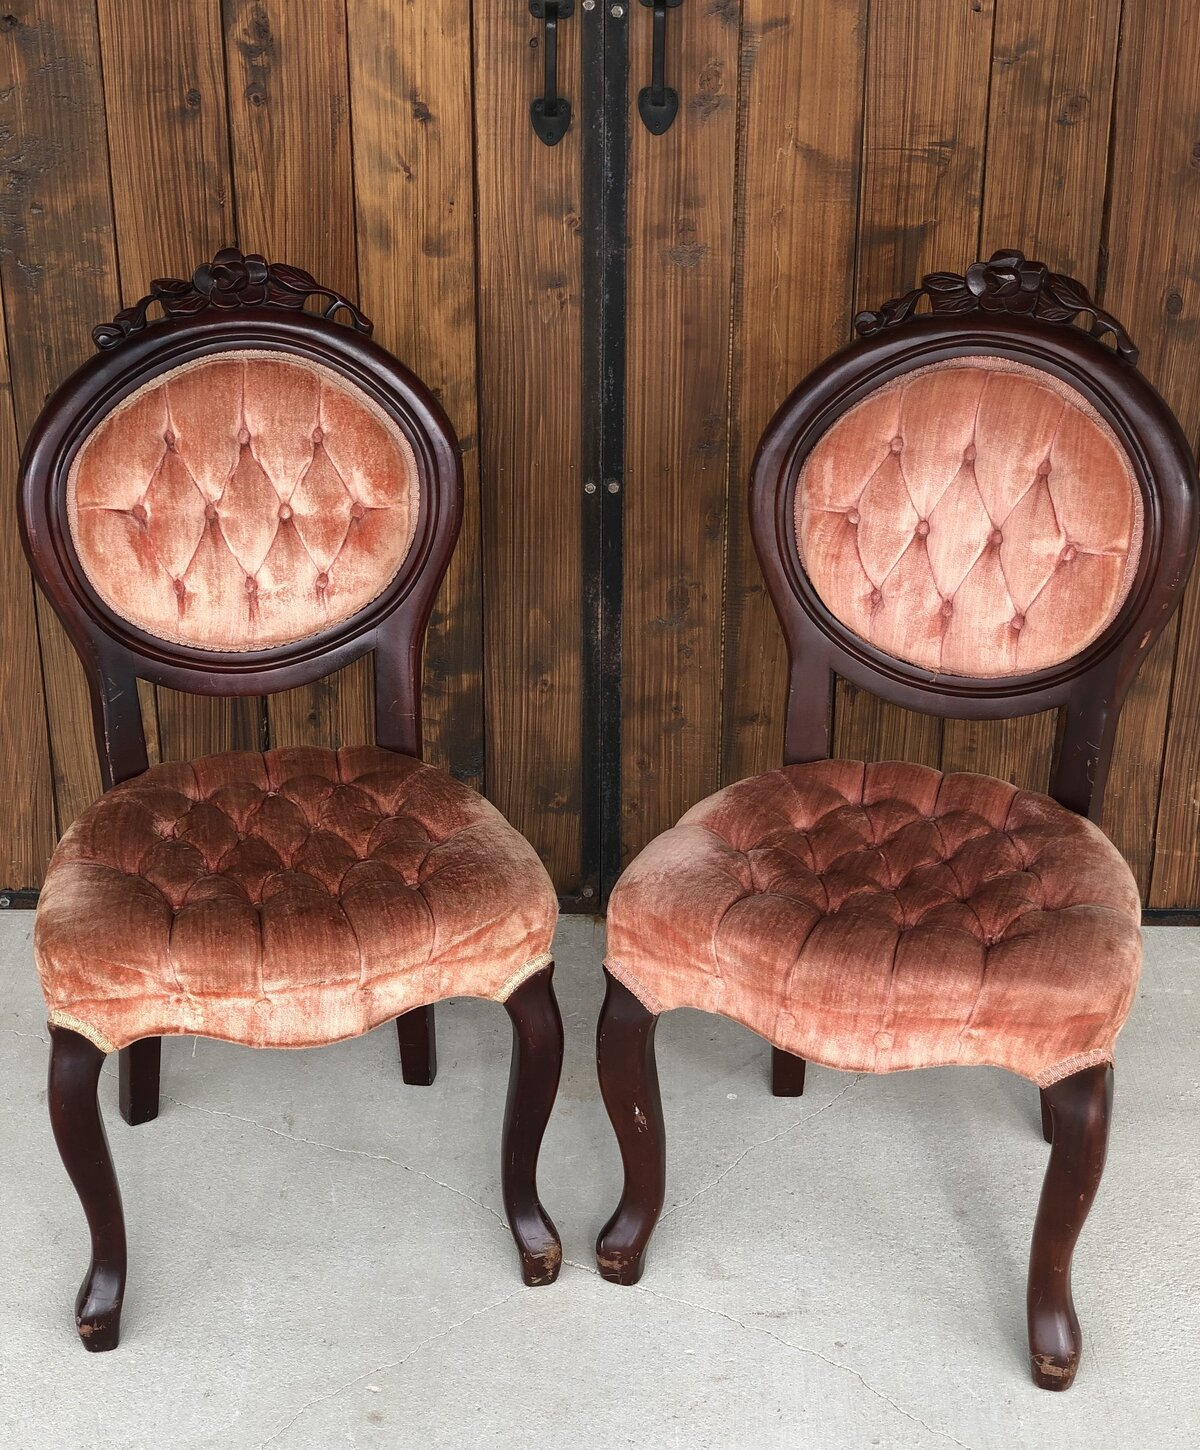 Peach Chair Set